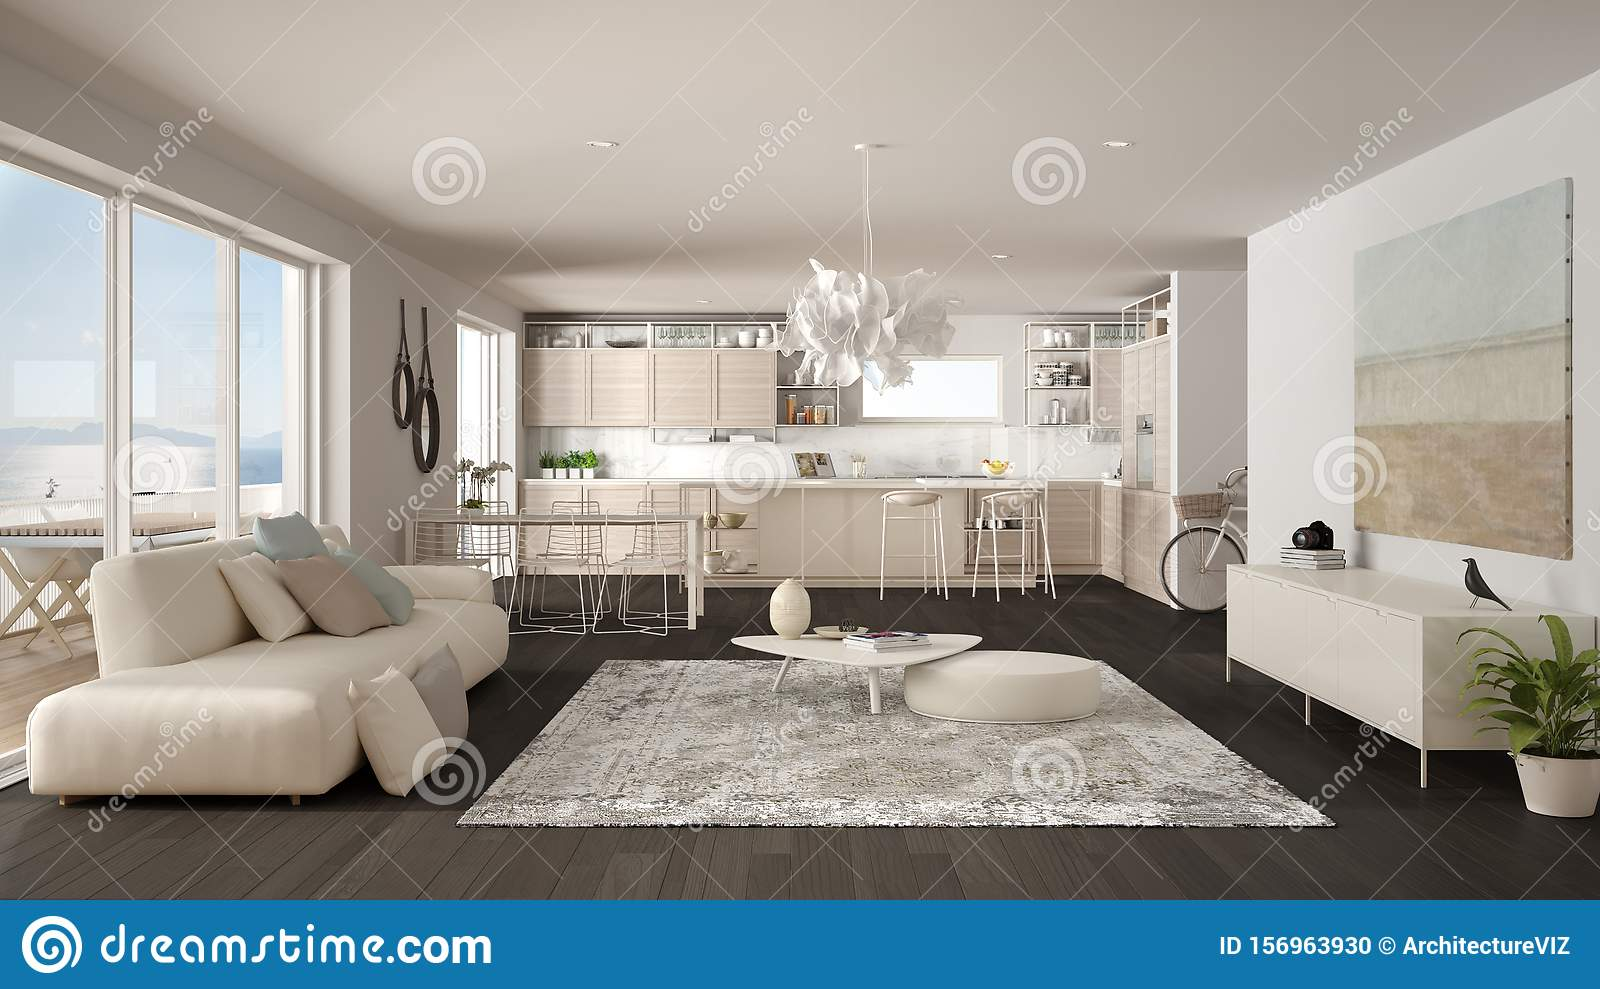 Penthouse Living Room And Kitchen Interior Design Lounge With Sofa And Carpet Dining Table Island With Stools Parquet Modern Stock Photo Image Of Apartment Flooring 156963930